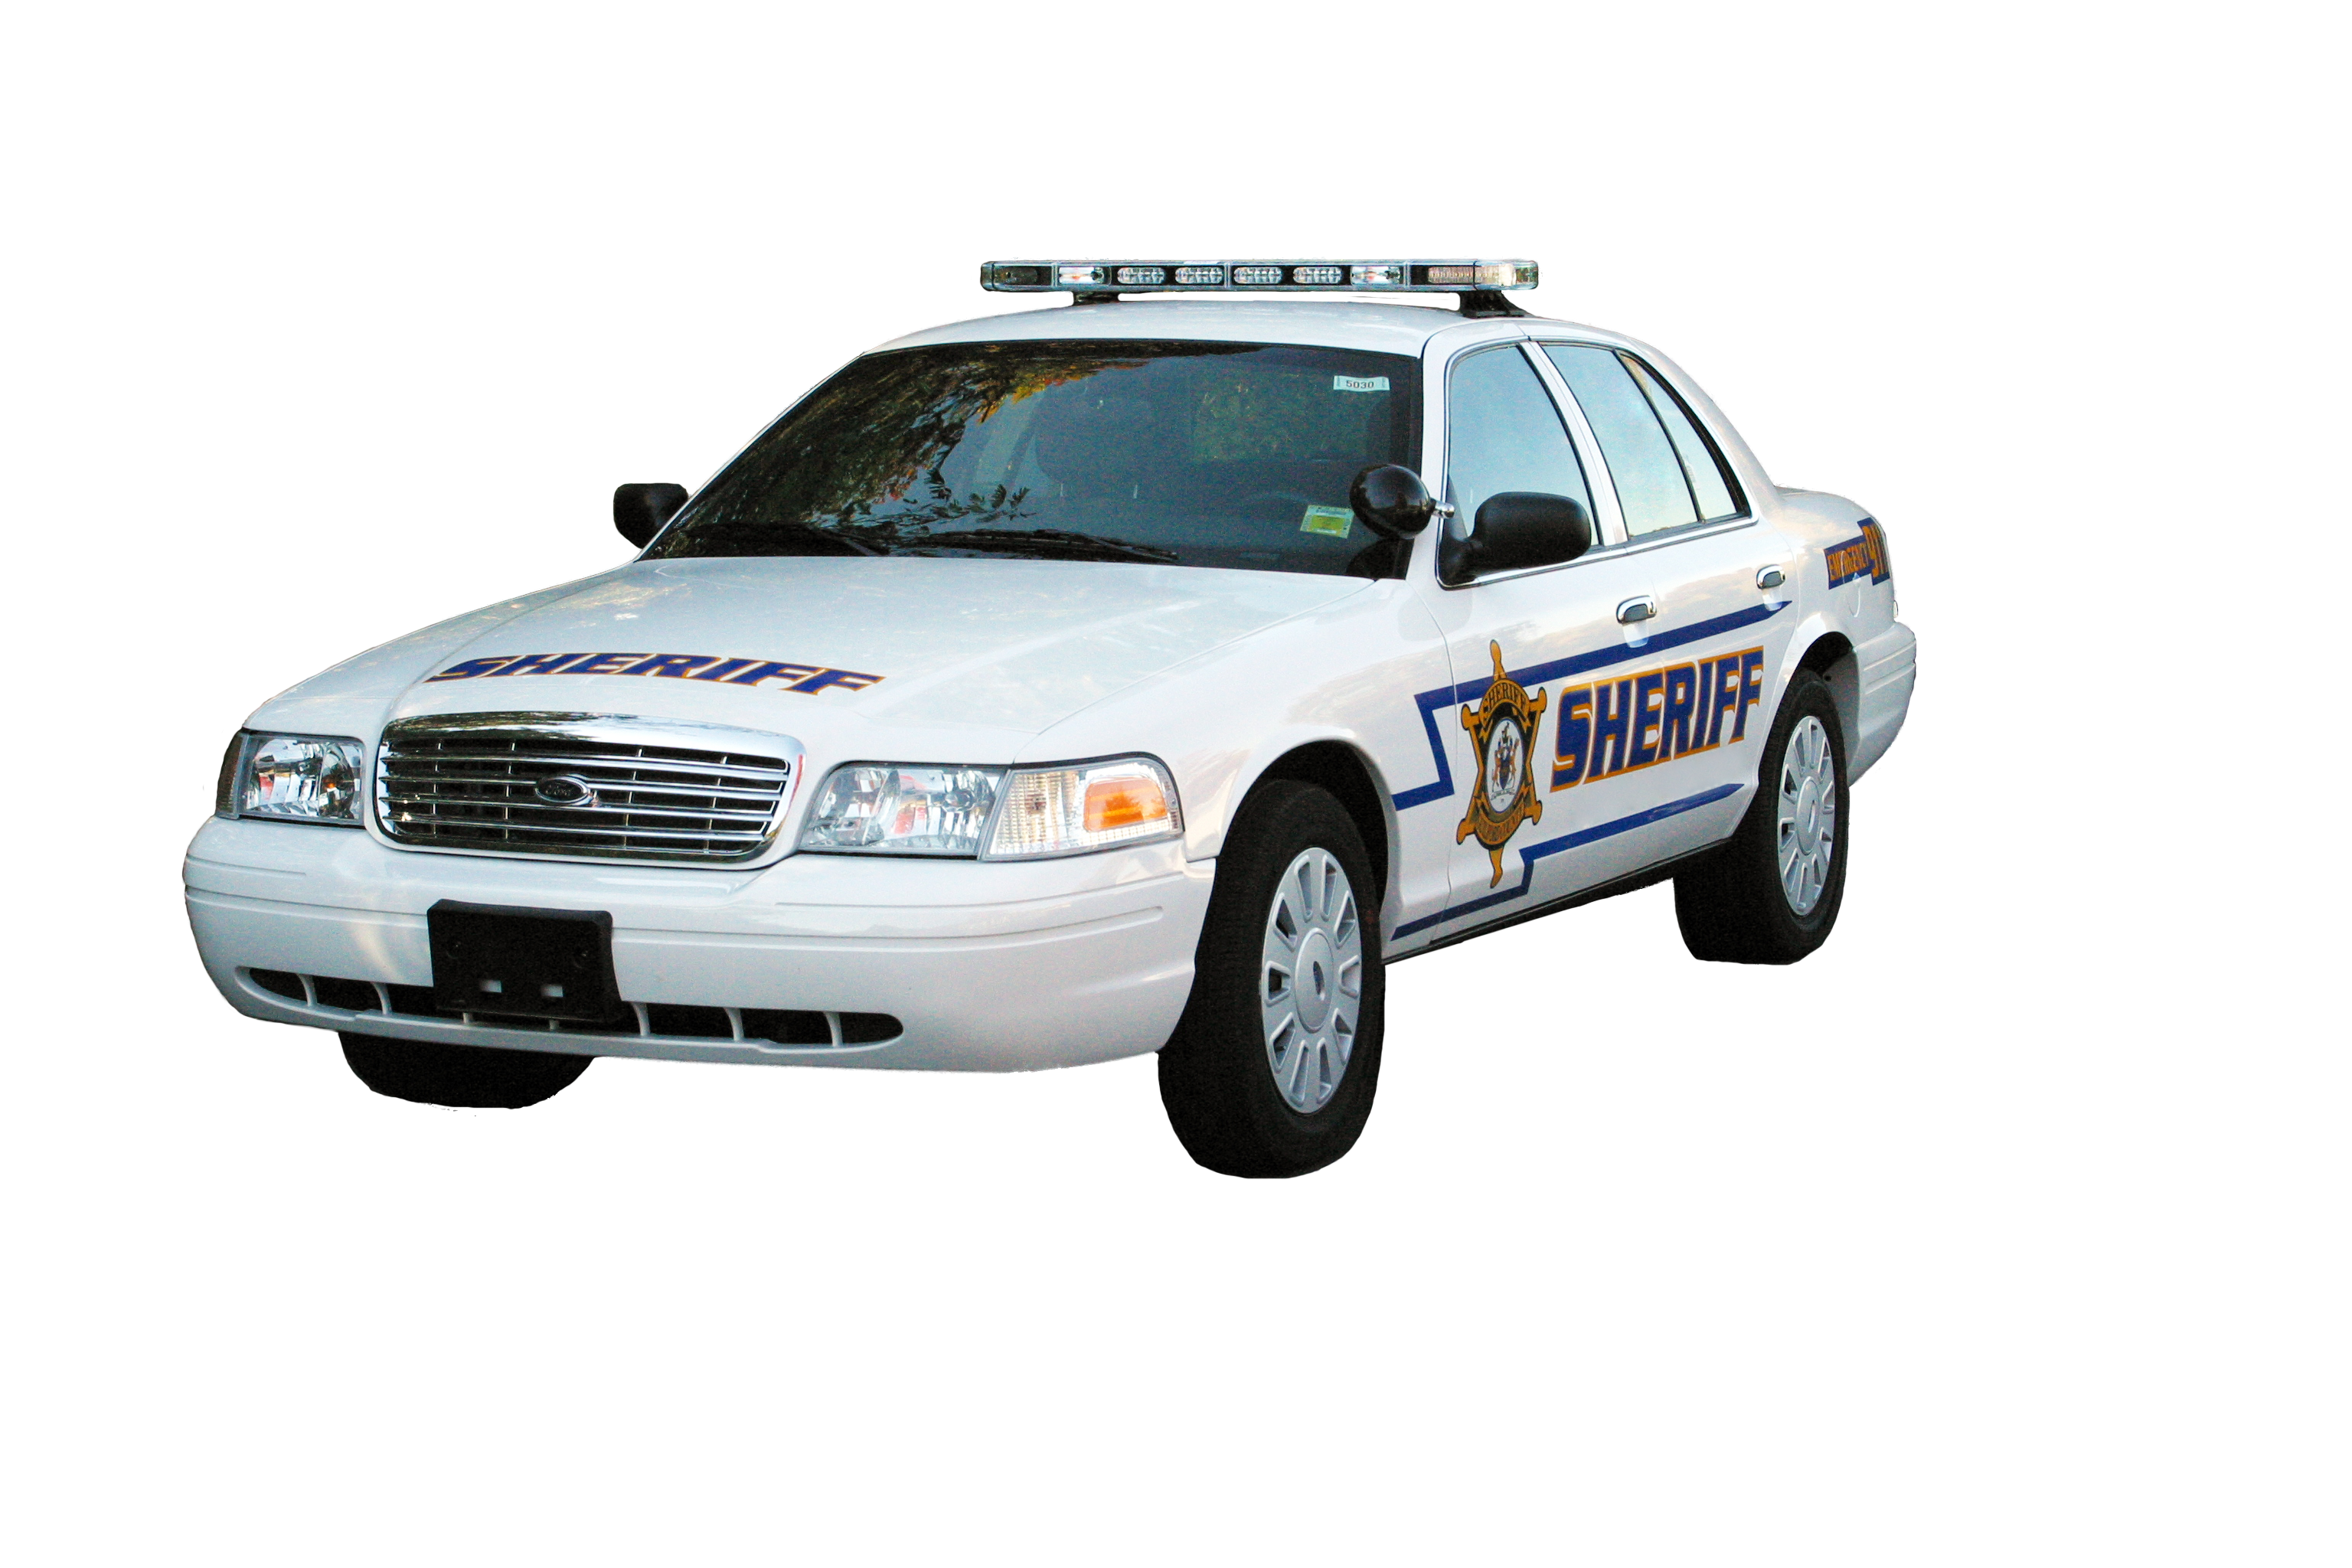 Police Vehicle Png image #28792